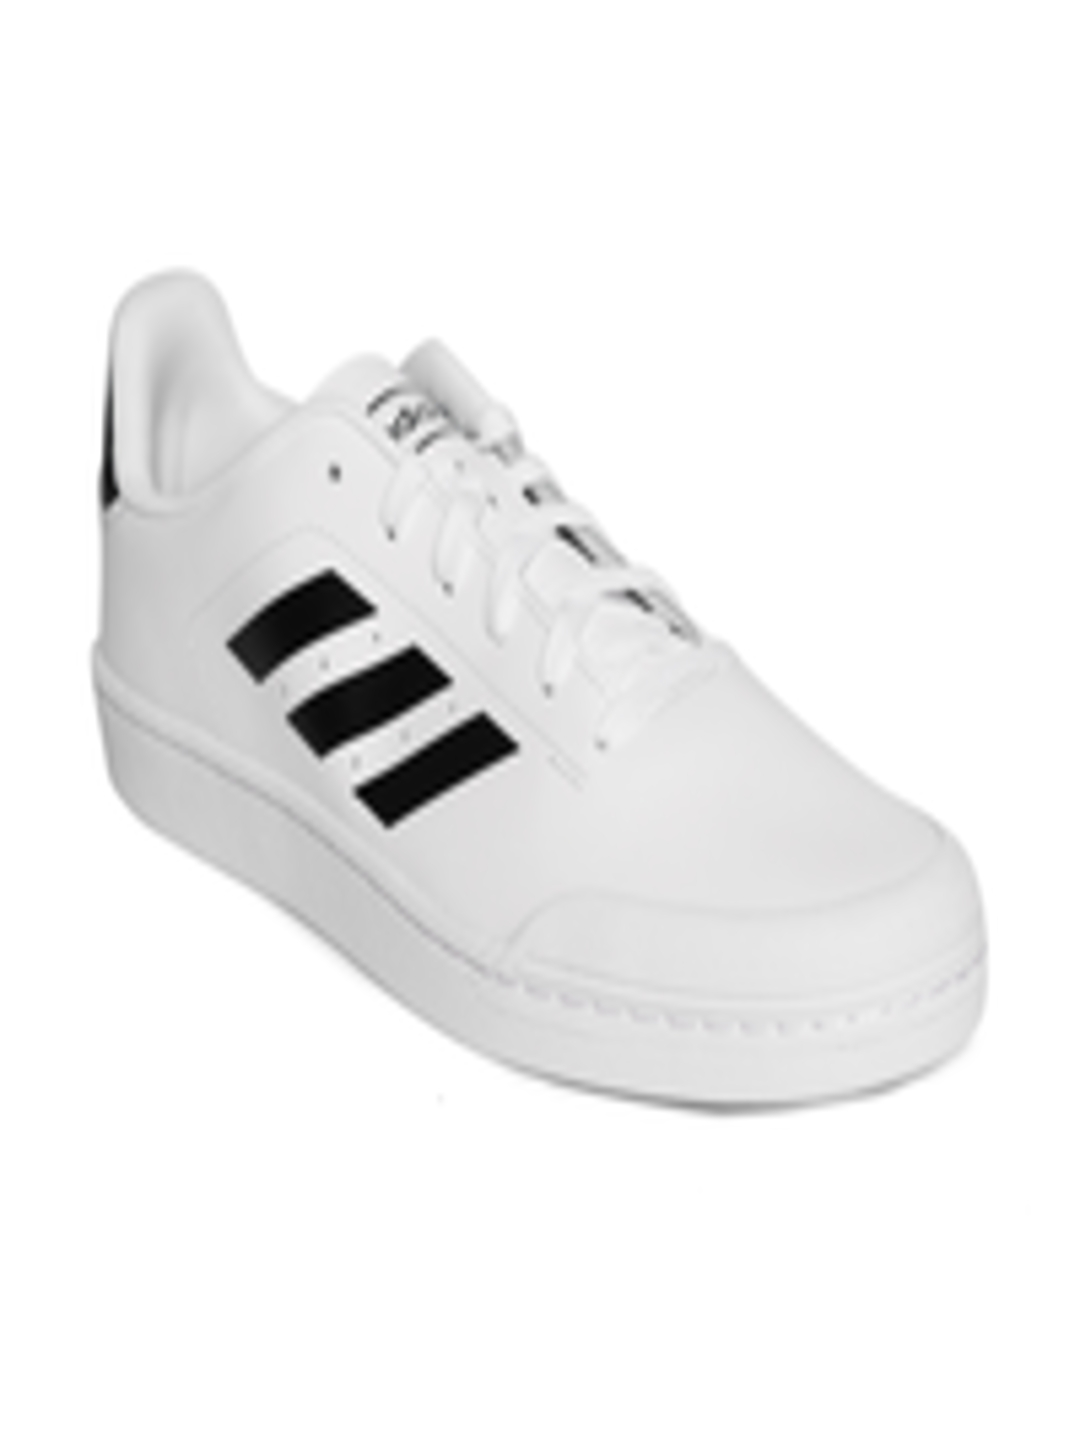 new style 4d2ca a7740 Buy Adidas Men White Court70S Tennis Shoes - Sports Shoes for Men 6841757   Myntra